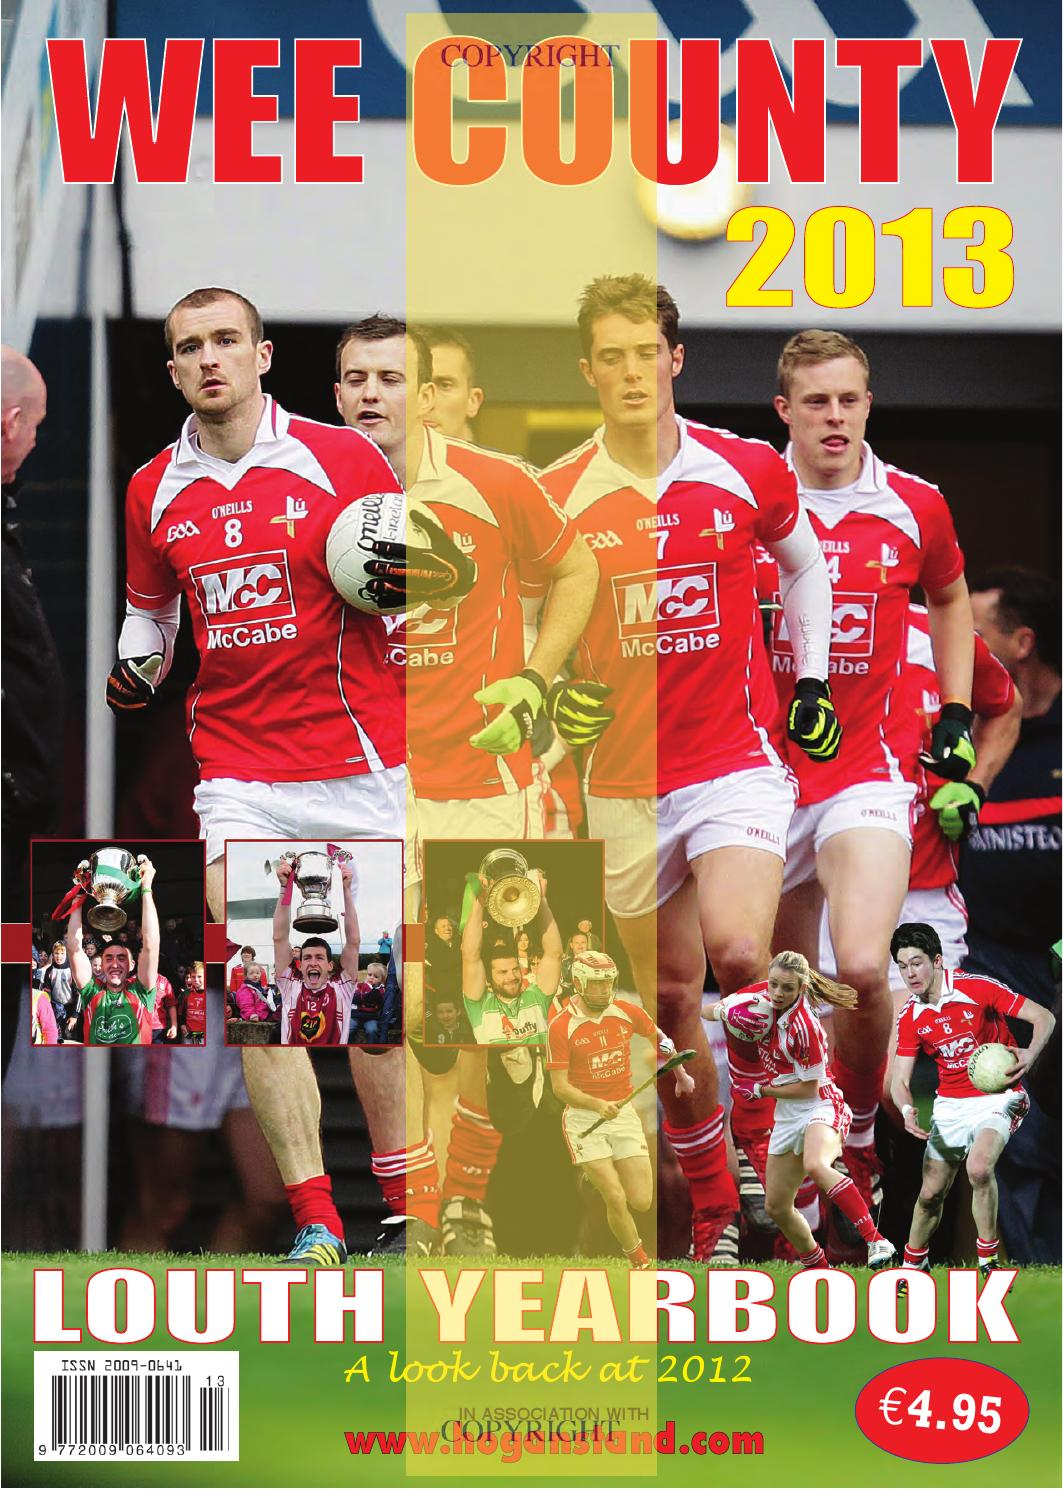 626464a2d Wee County Louth Yearbook 2013 by Lynn Group Media - issuu